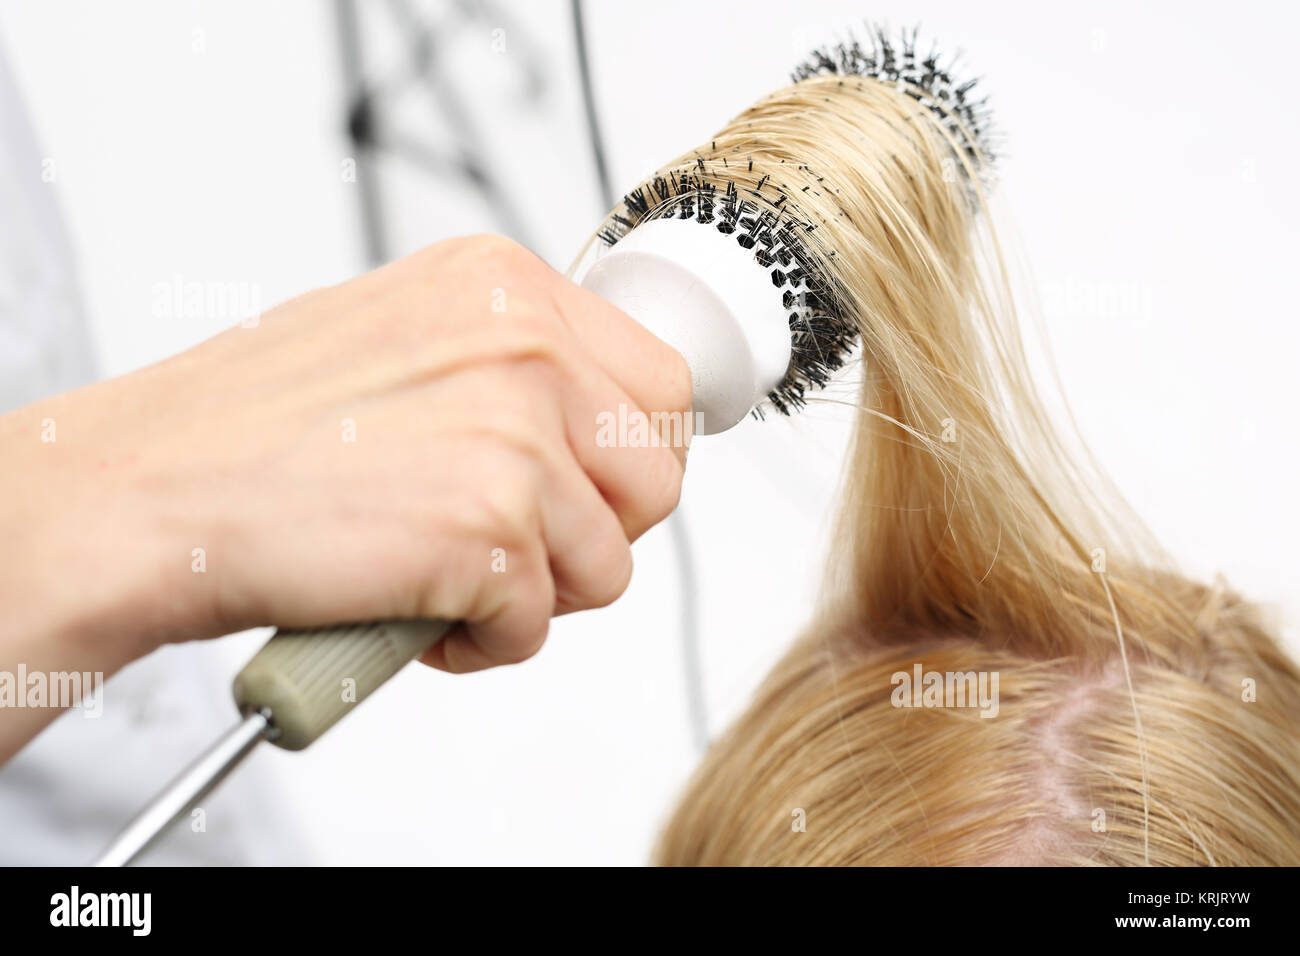 drying hair on a round brush - Stock Image